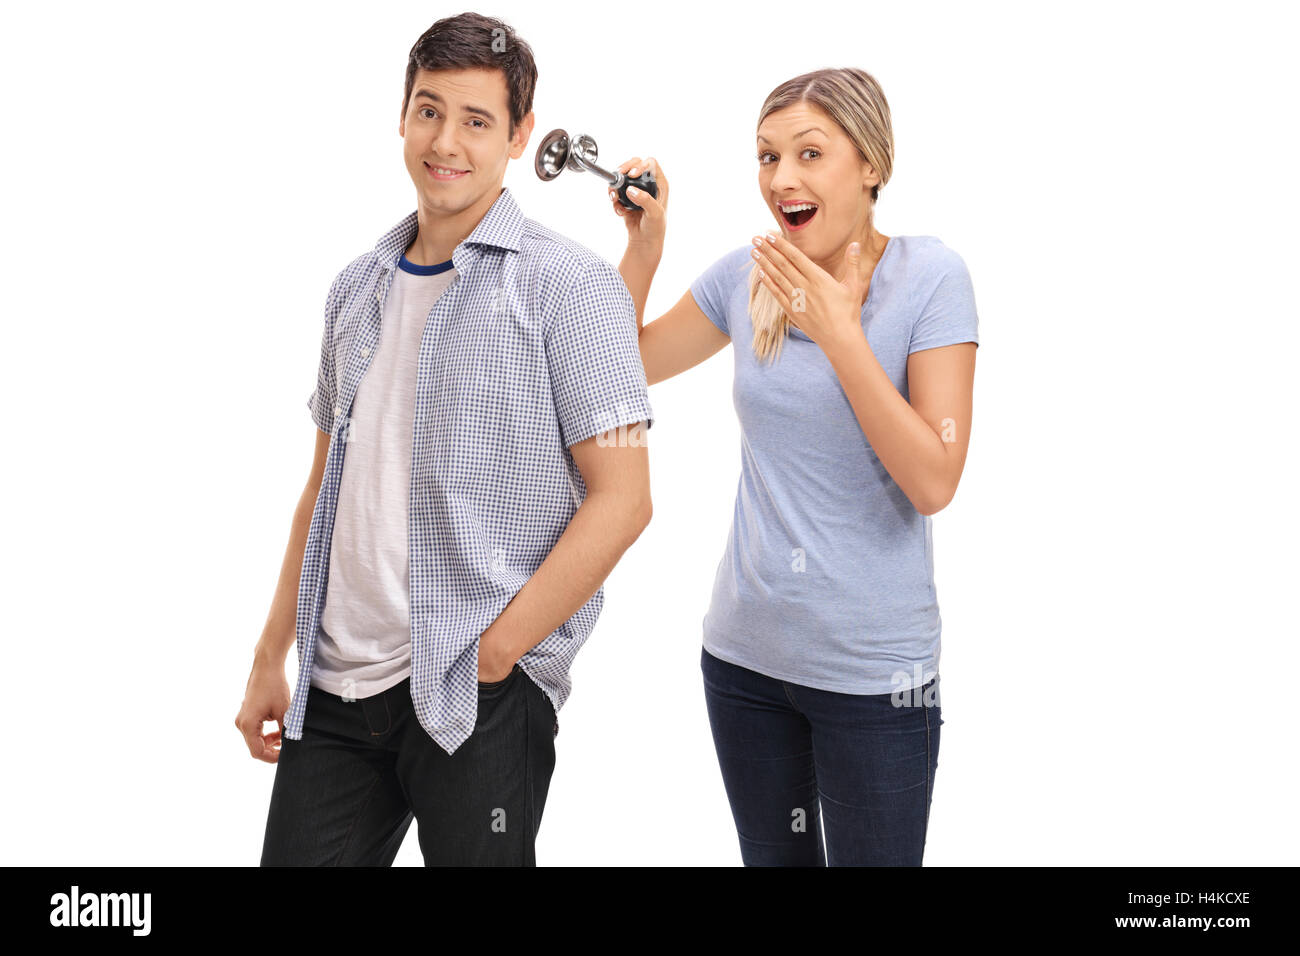 Woman pranking her boyfriend by honking a horn next to his ear isolated on white background - Stock Image